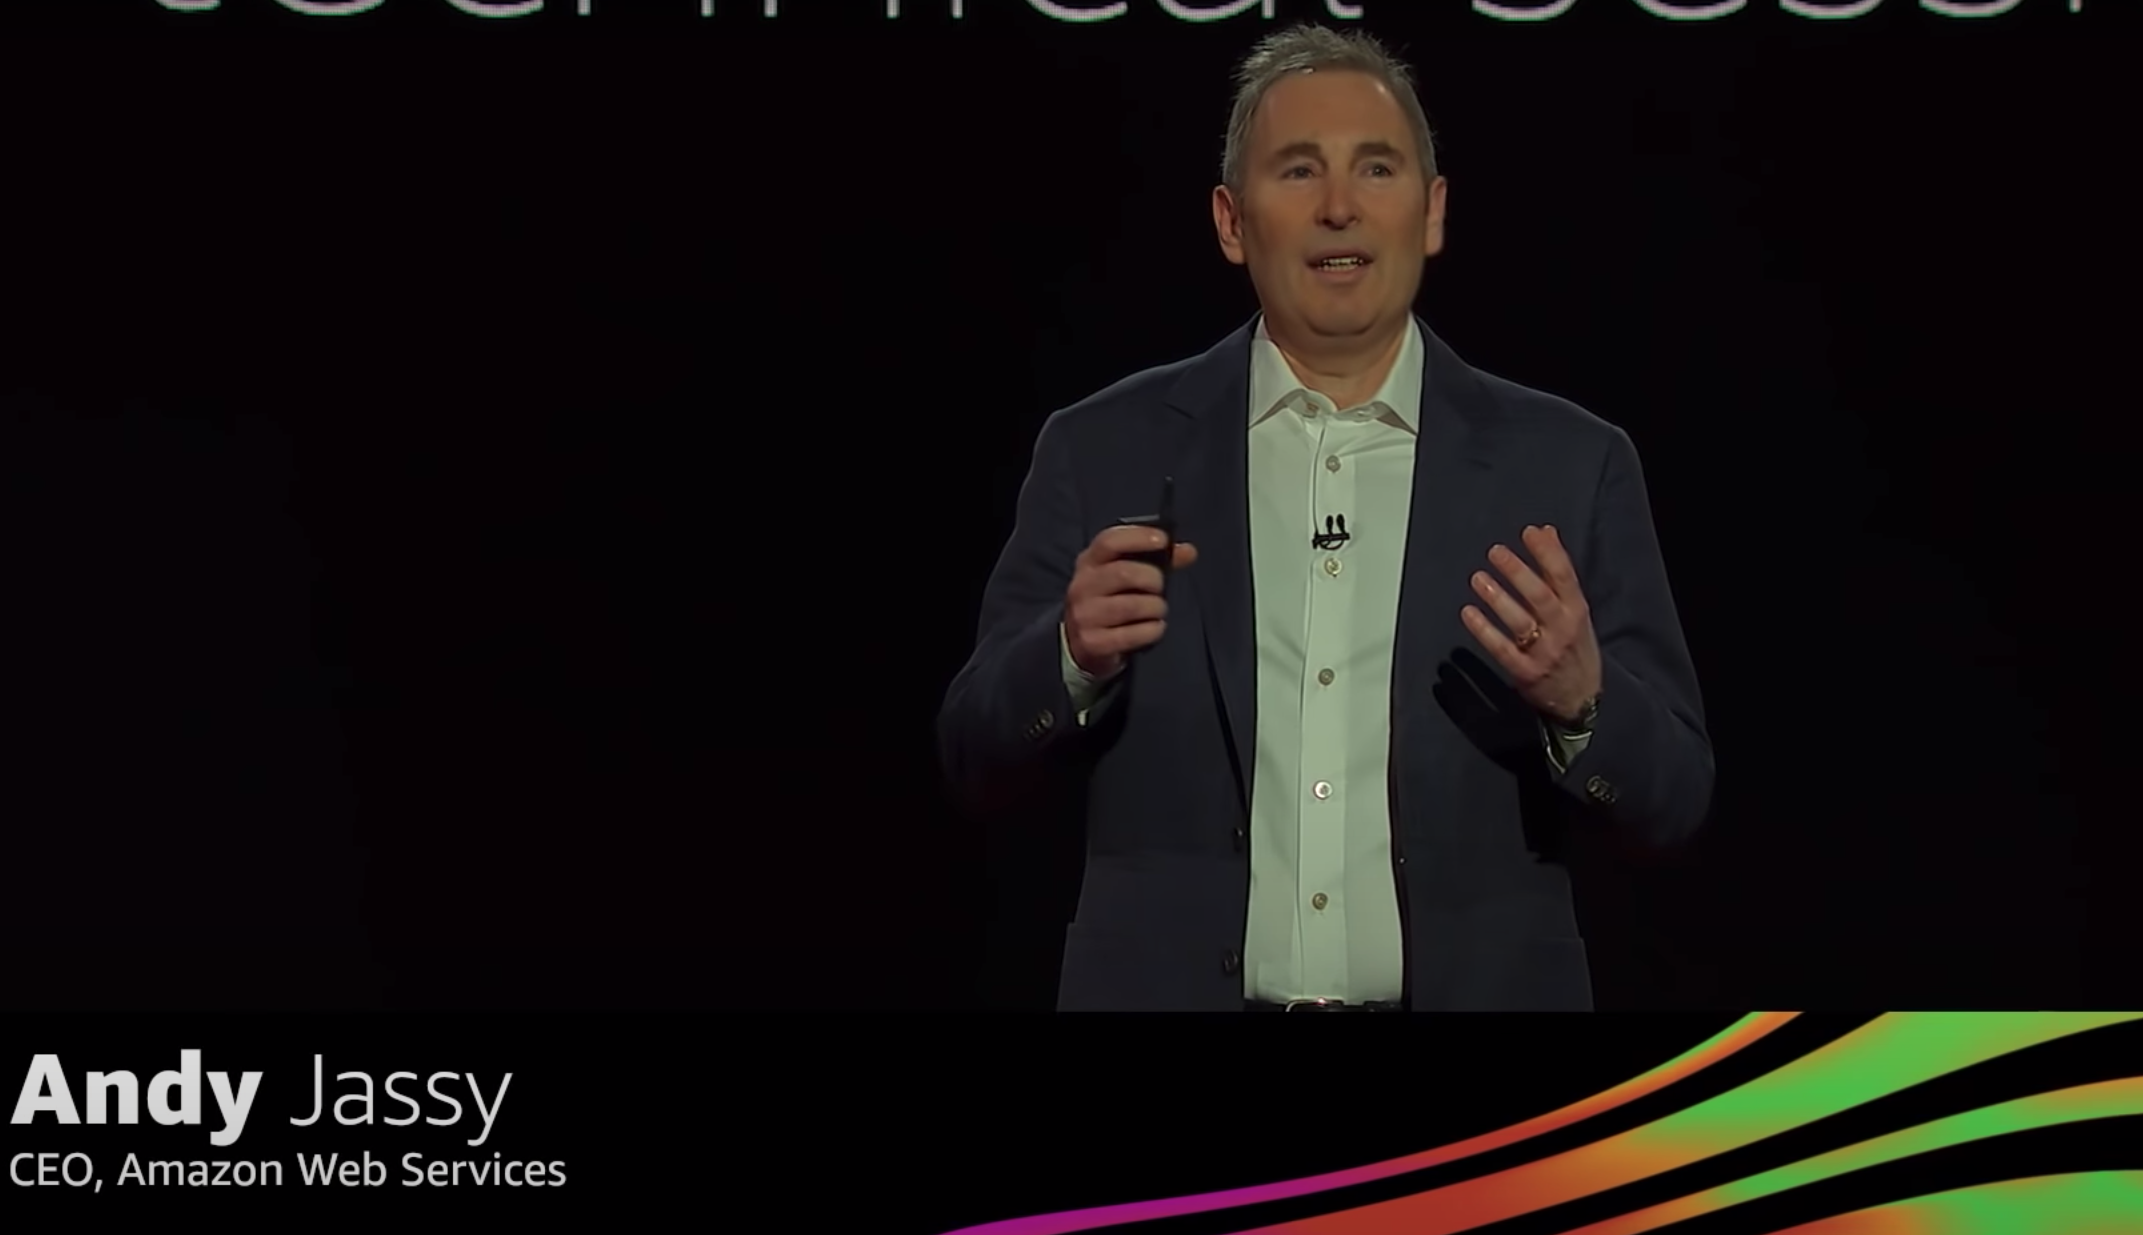 Andy Jassy, CEO of Amazon Web Services speaks at an Amazon keynote event.